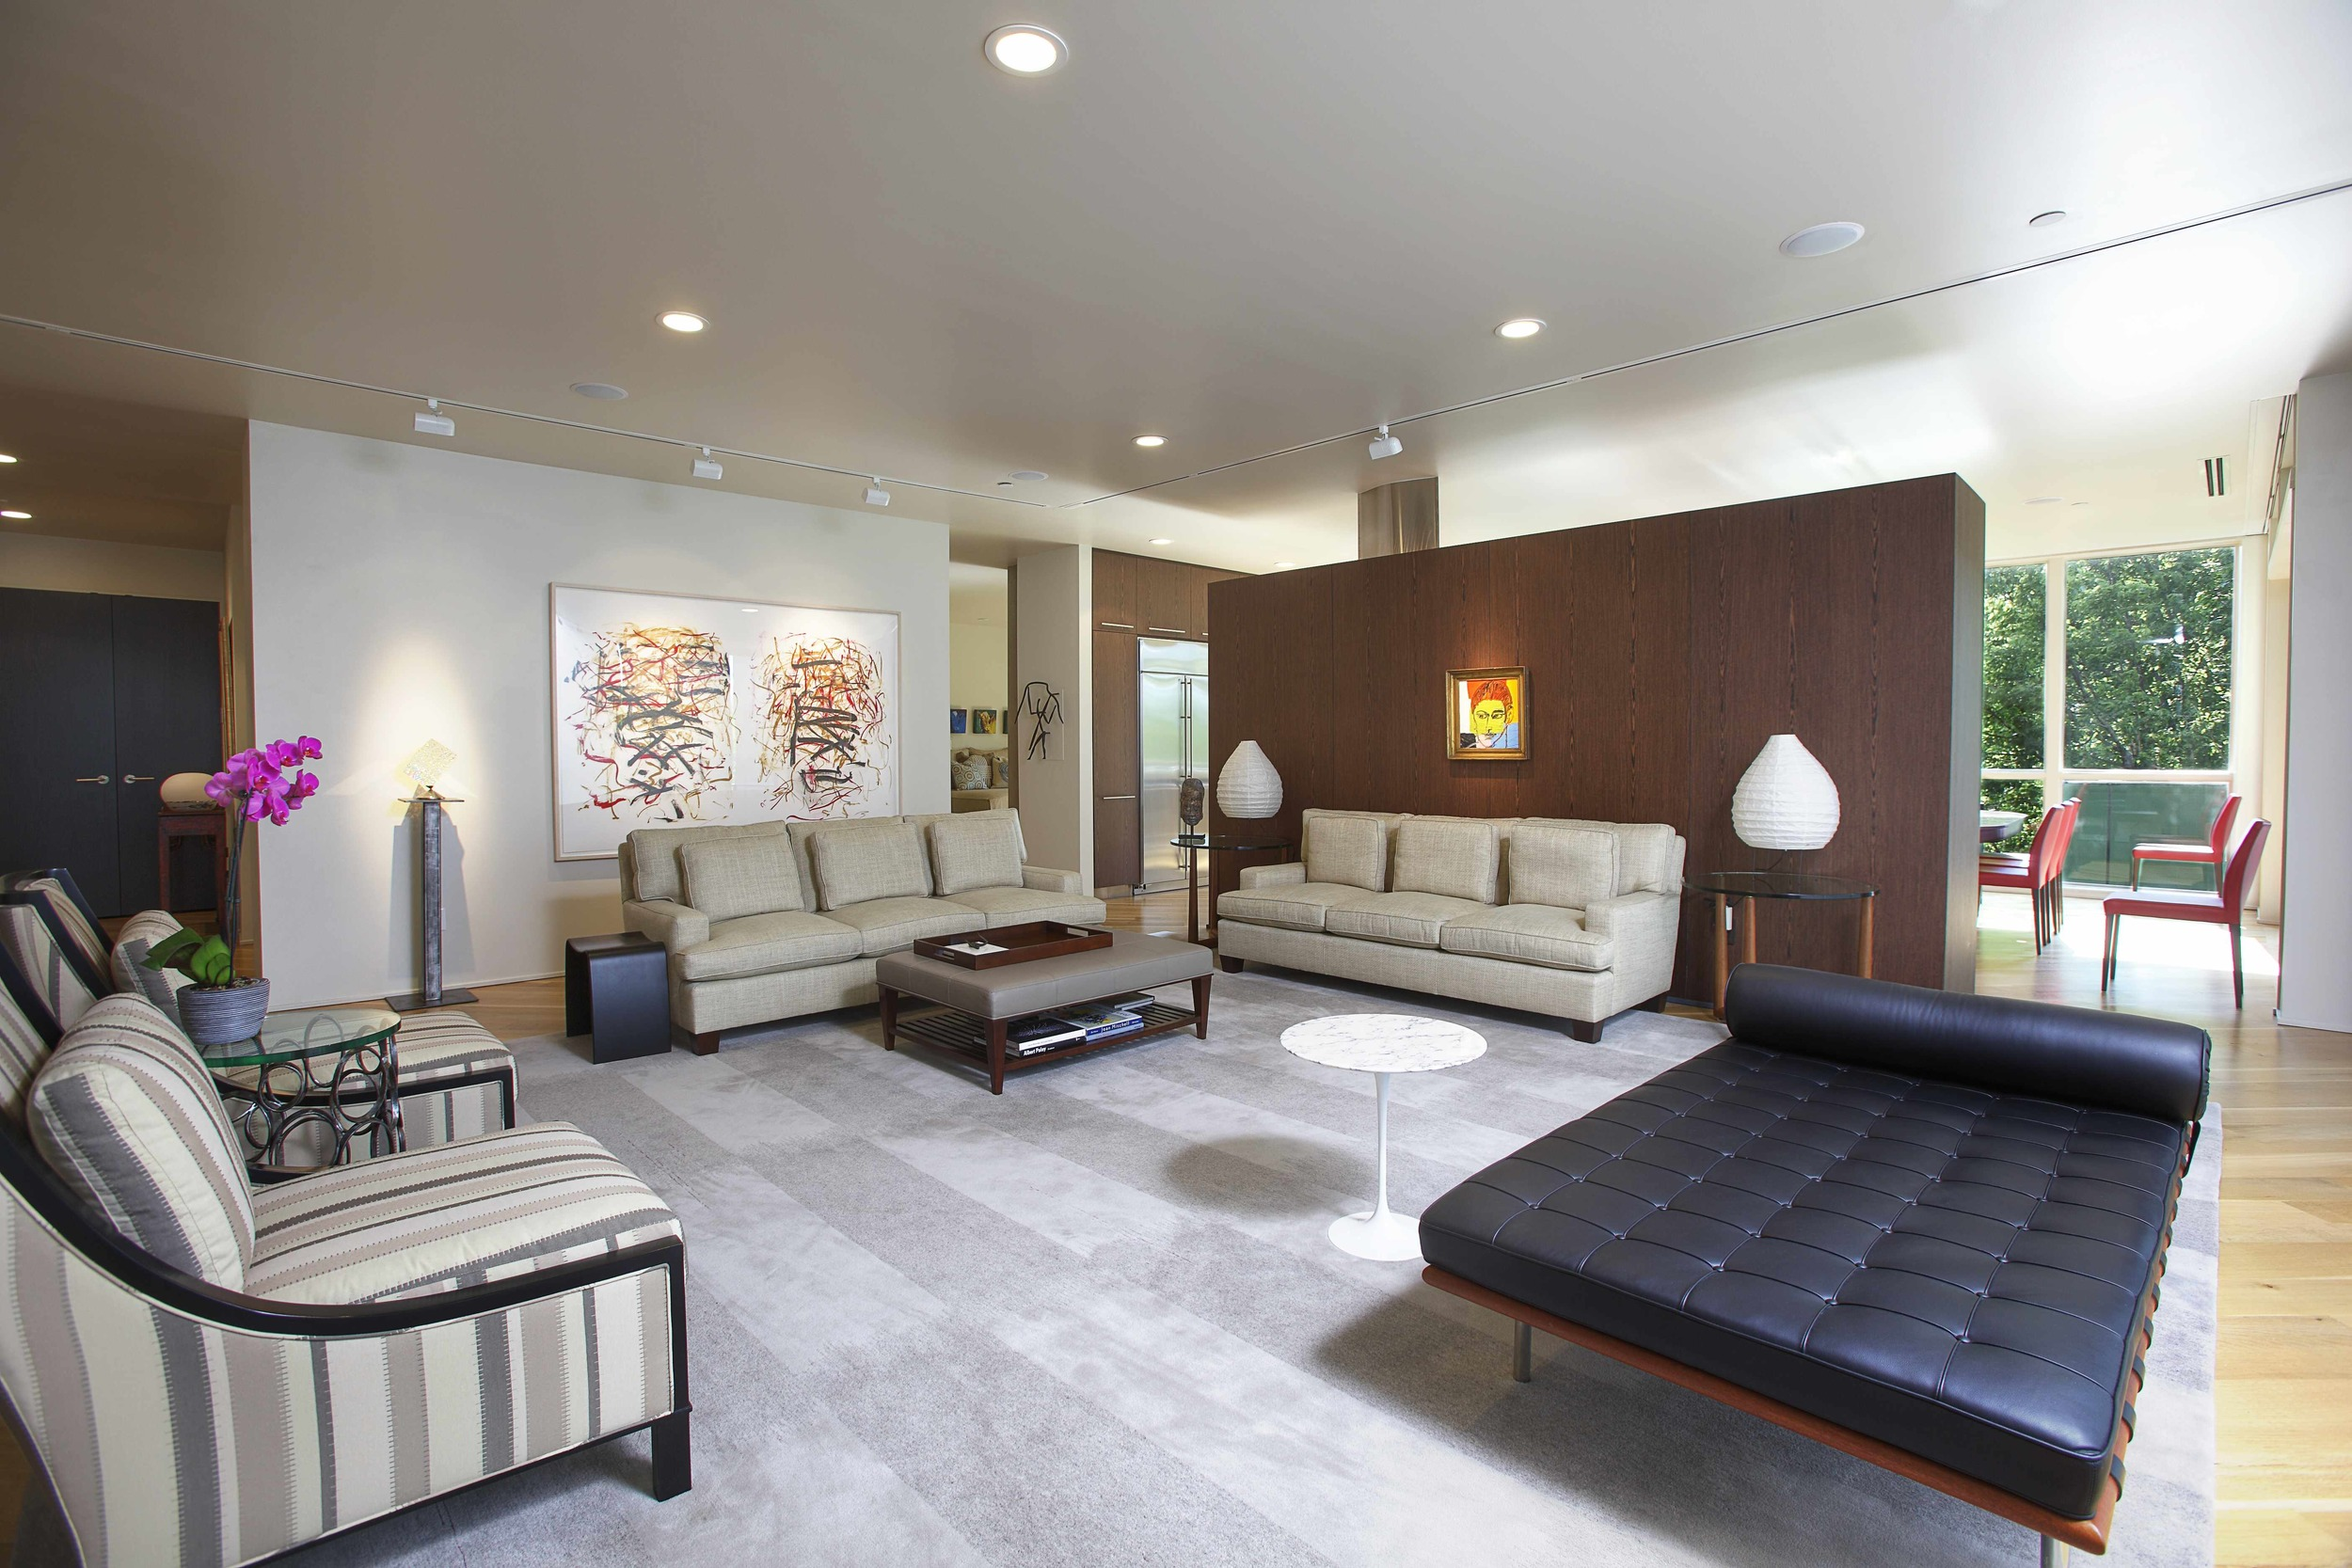 DIGS designer John Harrison made careful choices for this sumptuous yet neutral space. The expansive room strikes the right balance of comfortable living space and beautiful private gallery, with several seating areas for our DIGS clients to enjoy their contemporary art collection. Many pieces were acquired from one of our favorite locals - The Carl Solway Gallery.We can totally see sinking into the gorgeous leather recamier with a delicious cocktail to end the day.